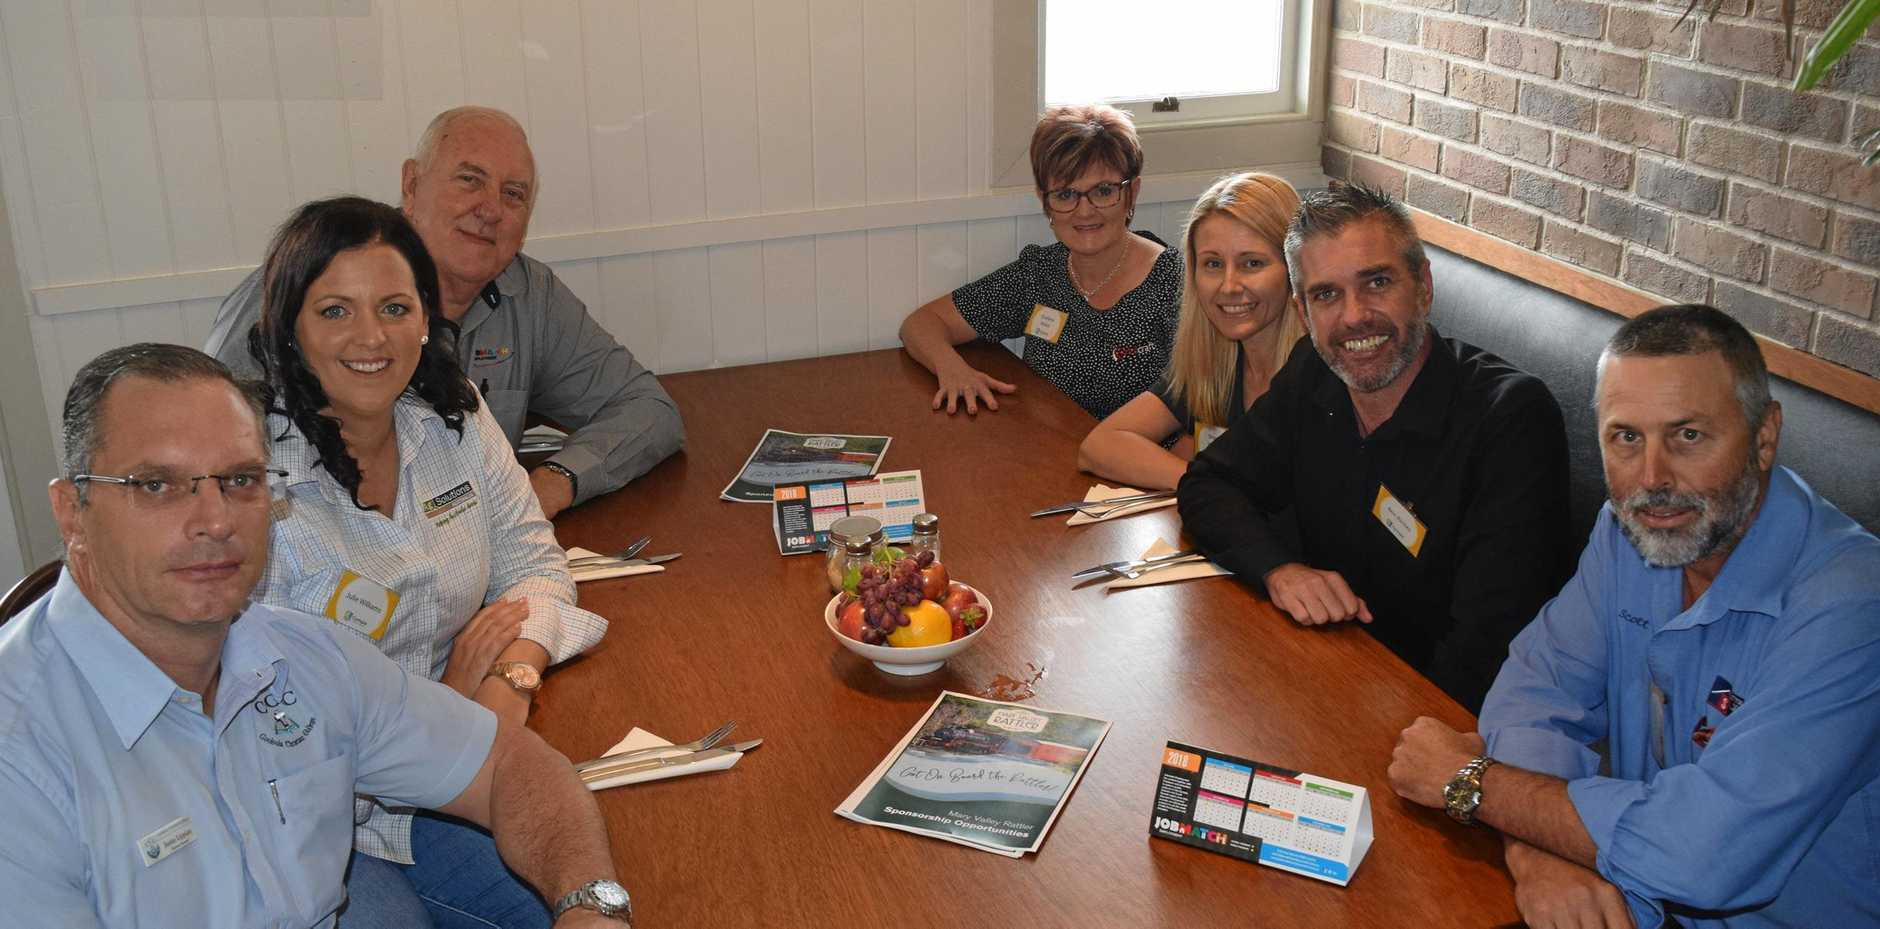 Gympie Chamber of Commerce board members (clockwise from left) Justin Lippiatt, Julie Williams, Garry Davison, Sharlene Makin, Sharon Hansen, Ben Riches and Scott Sutton.